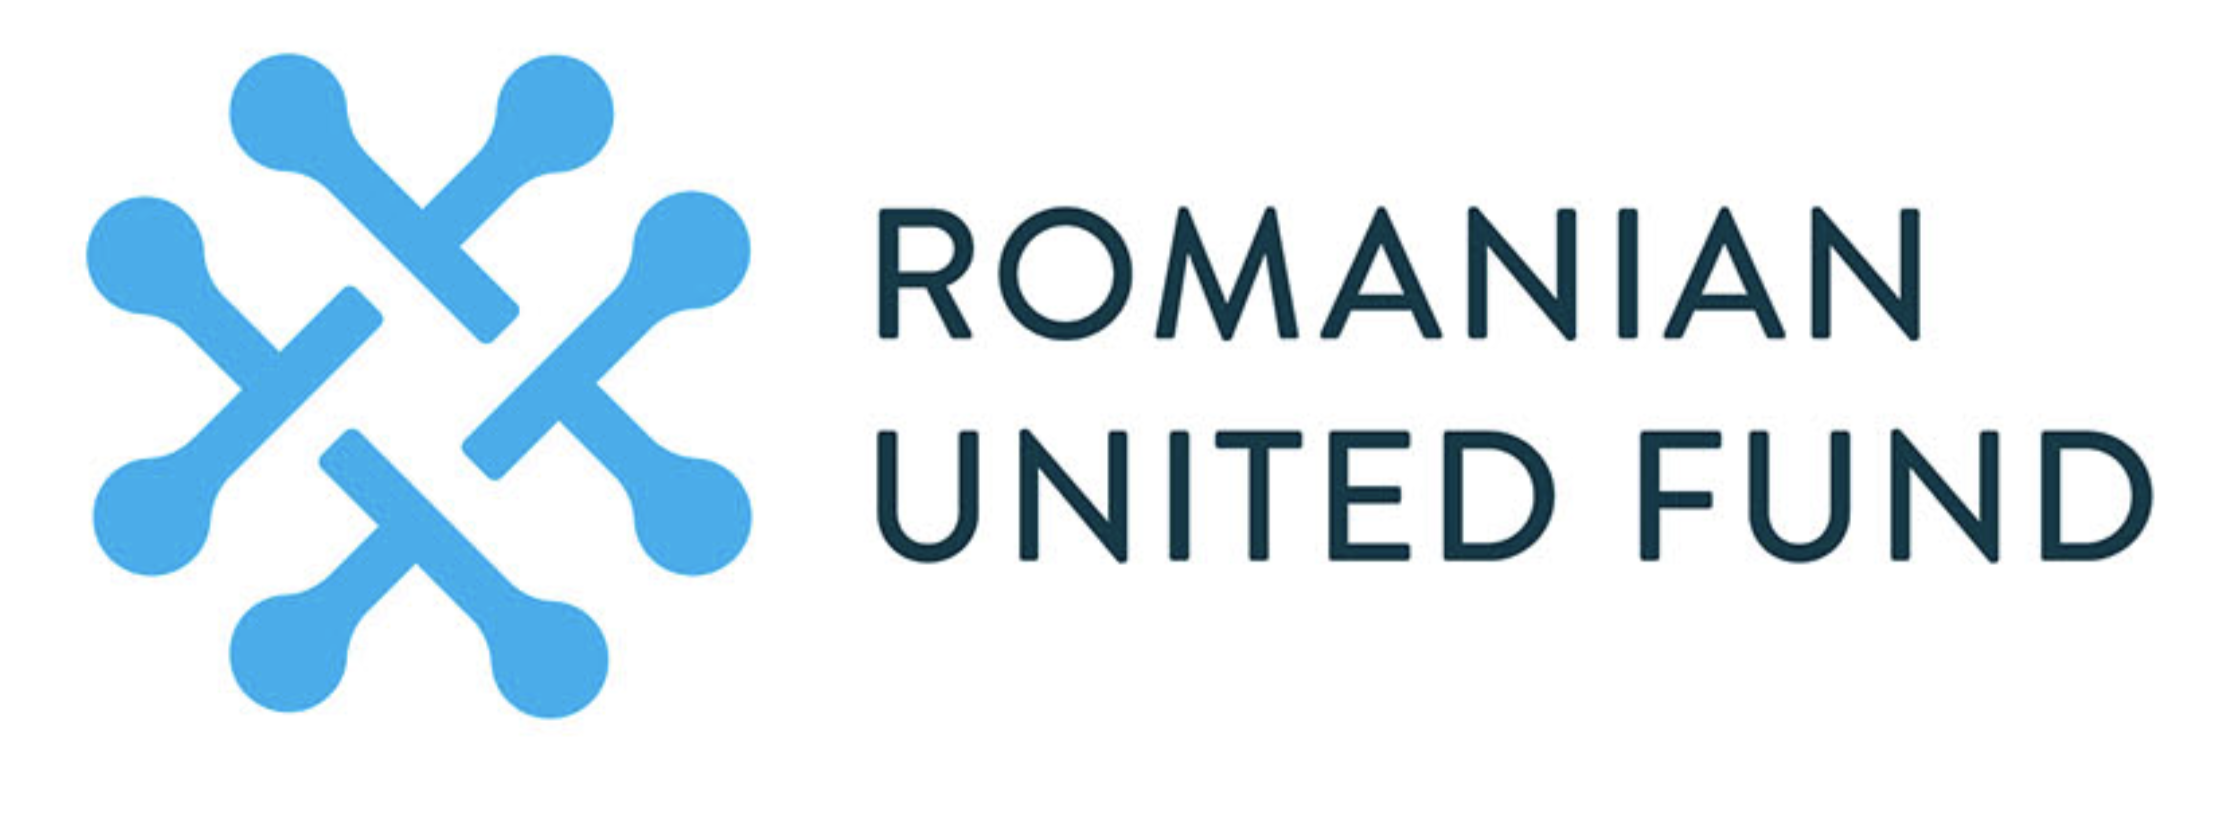 Romanian United Fund